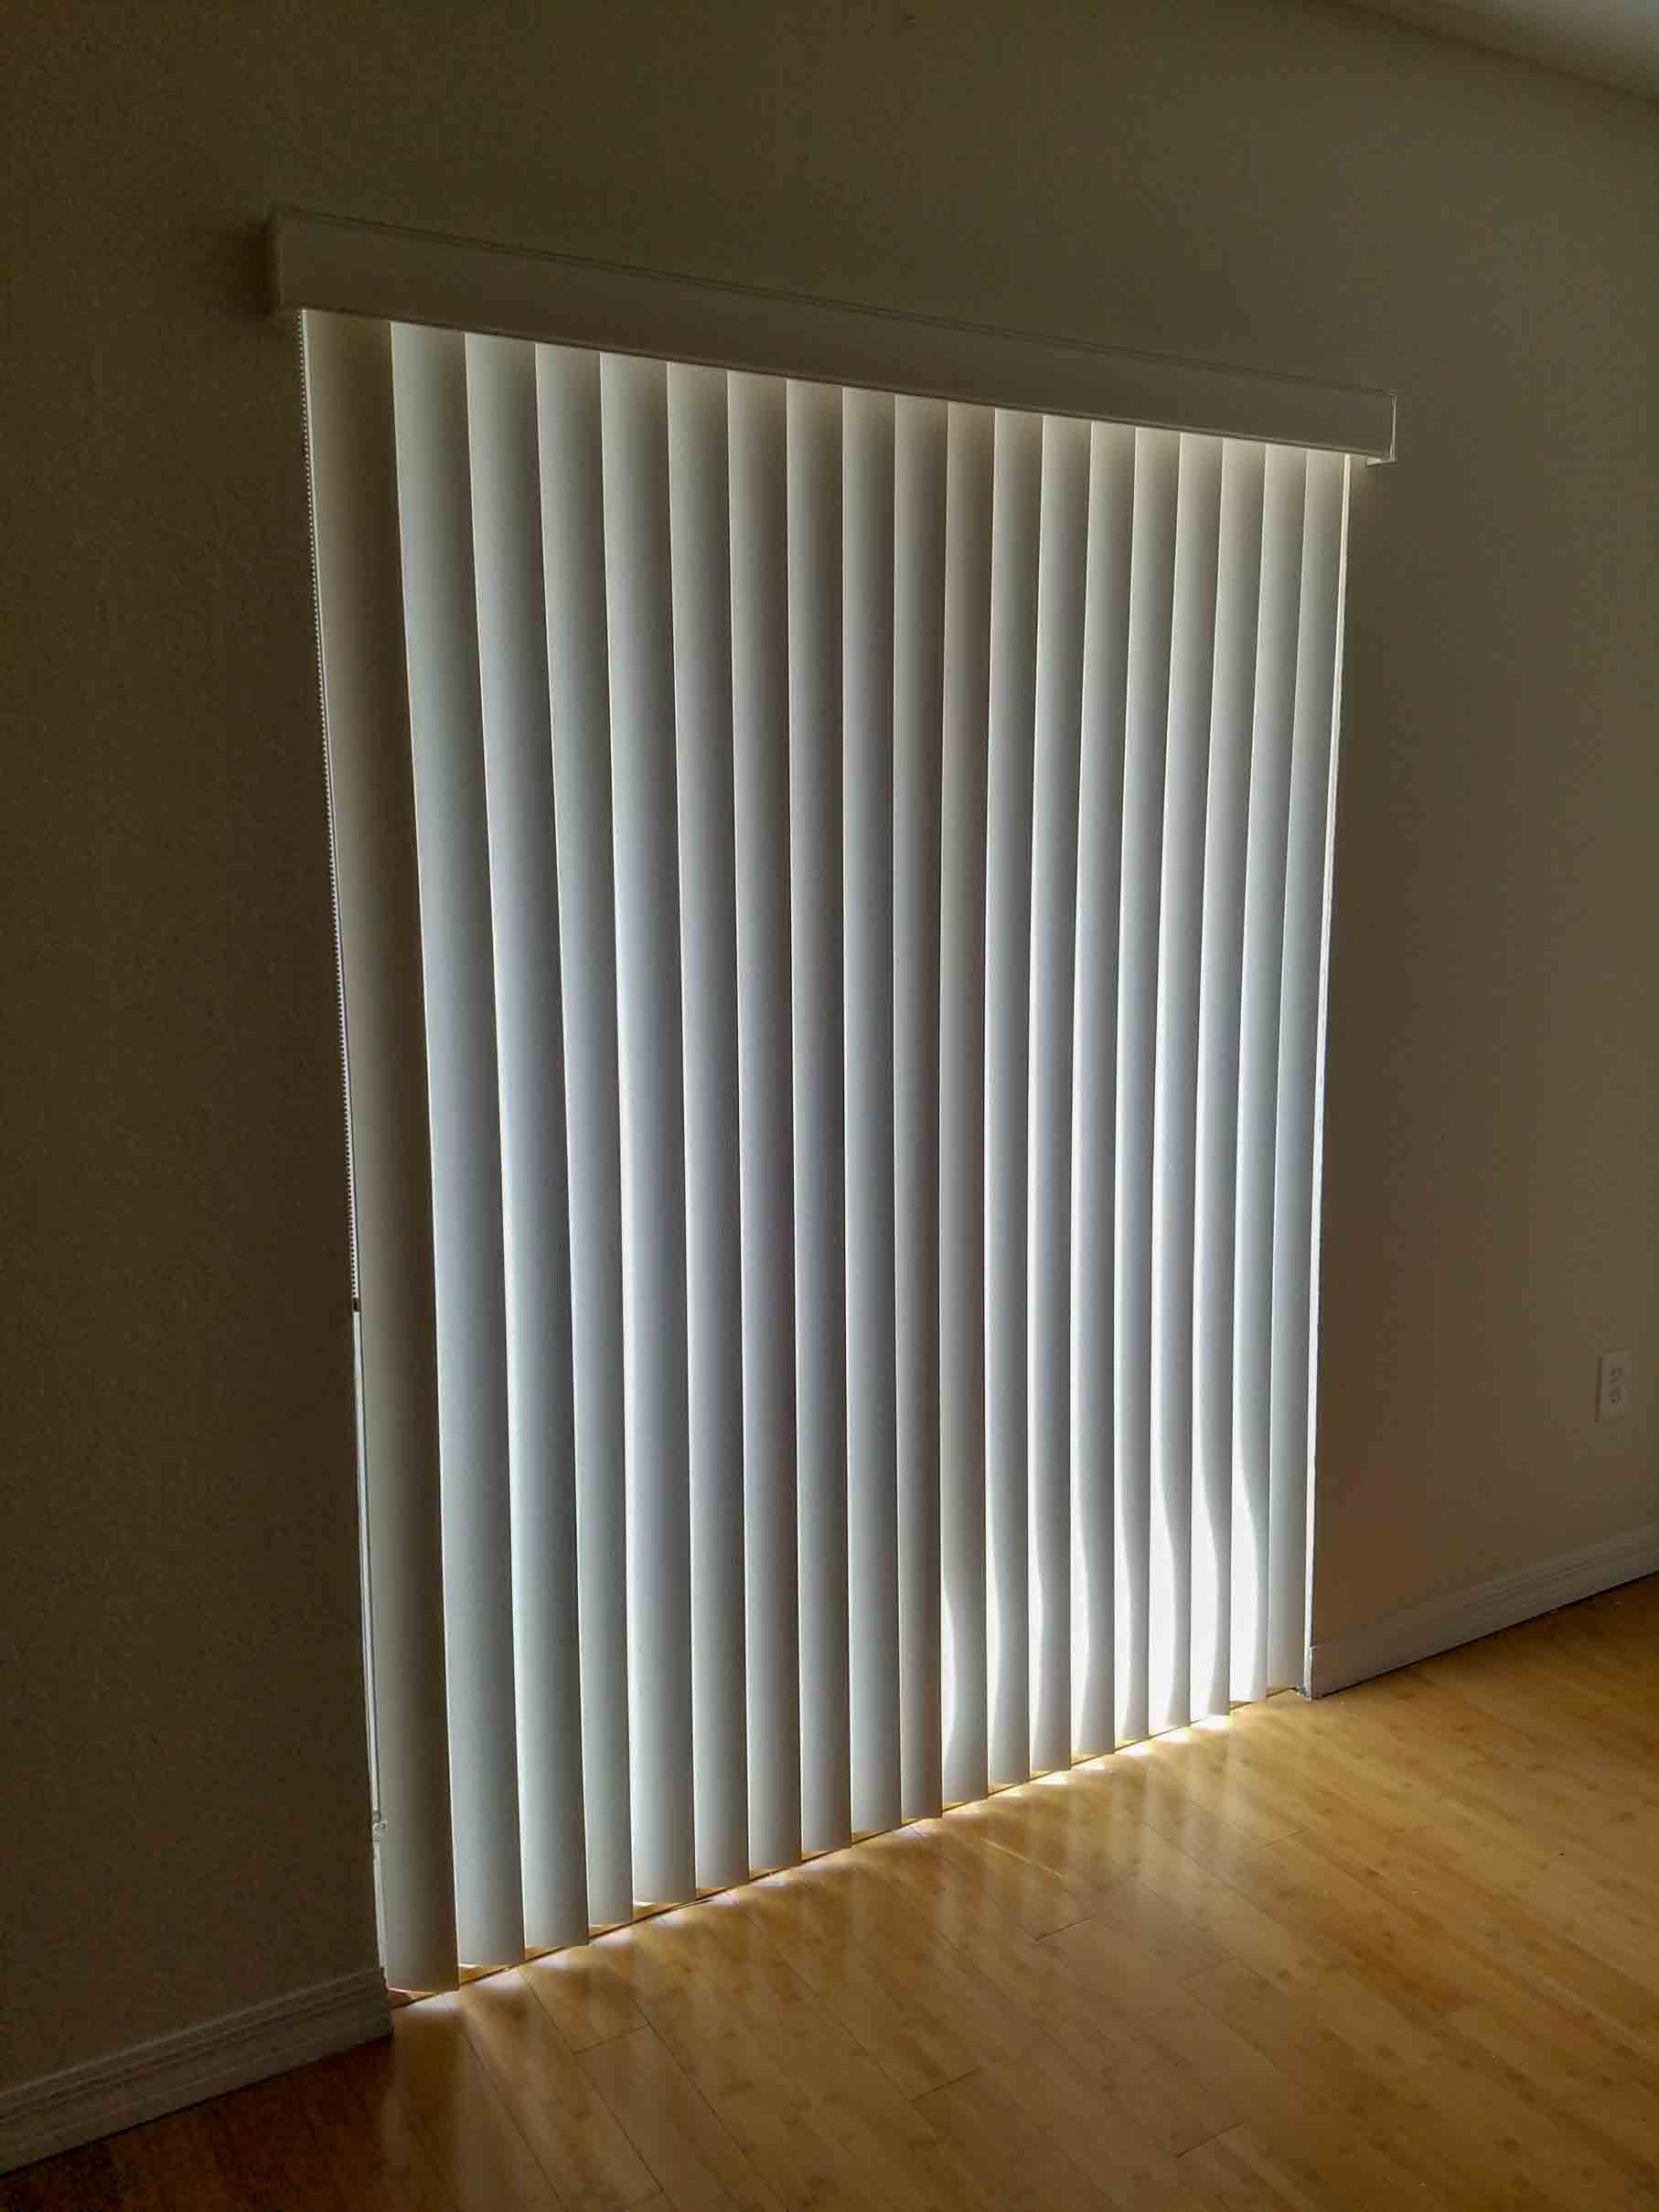 wood blinds gallery WOOD BLINDS GALLERY 20180222 123229